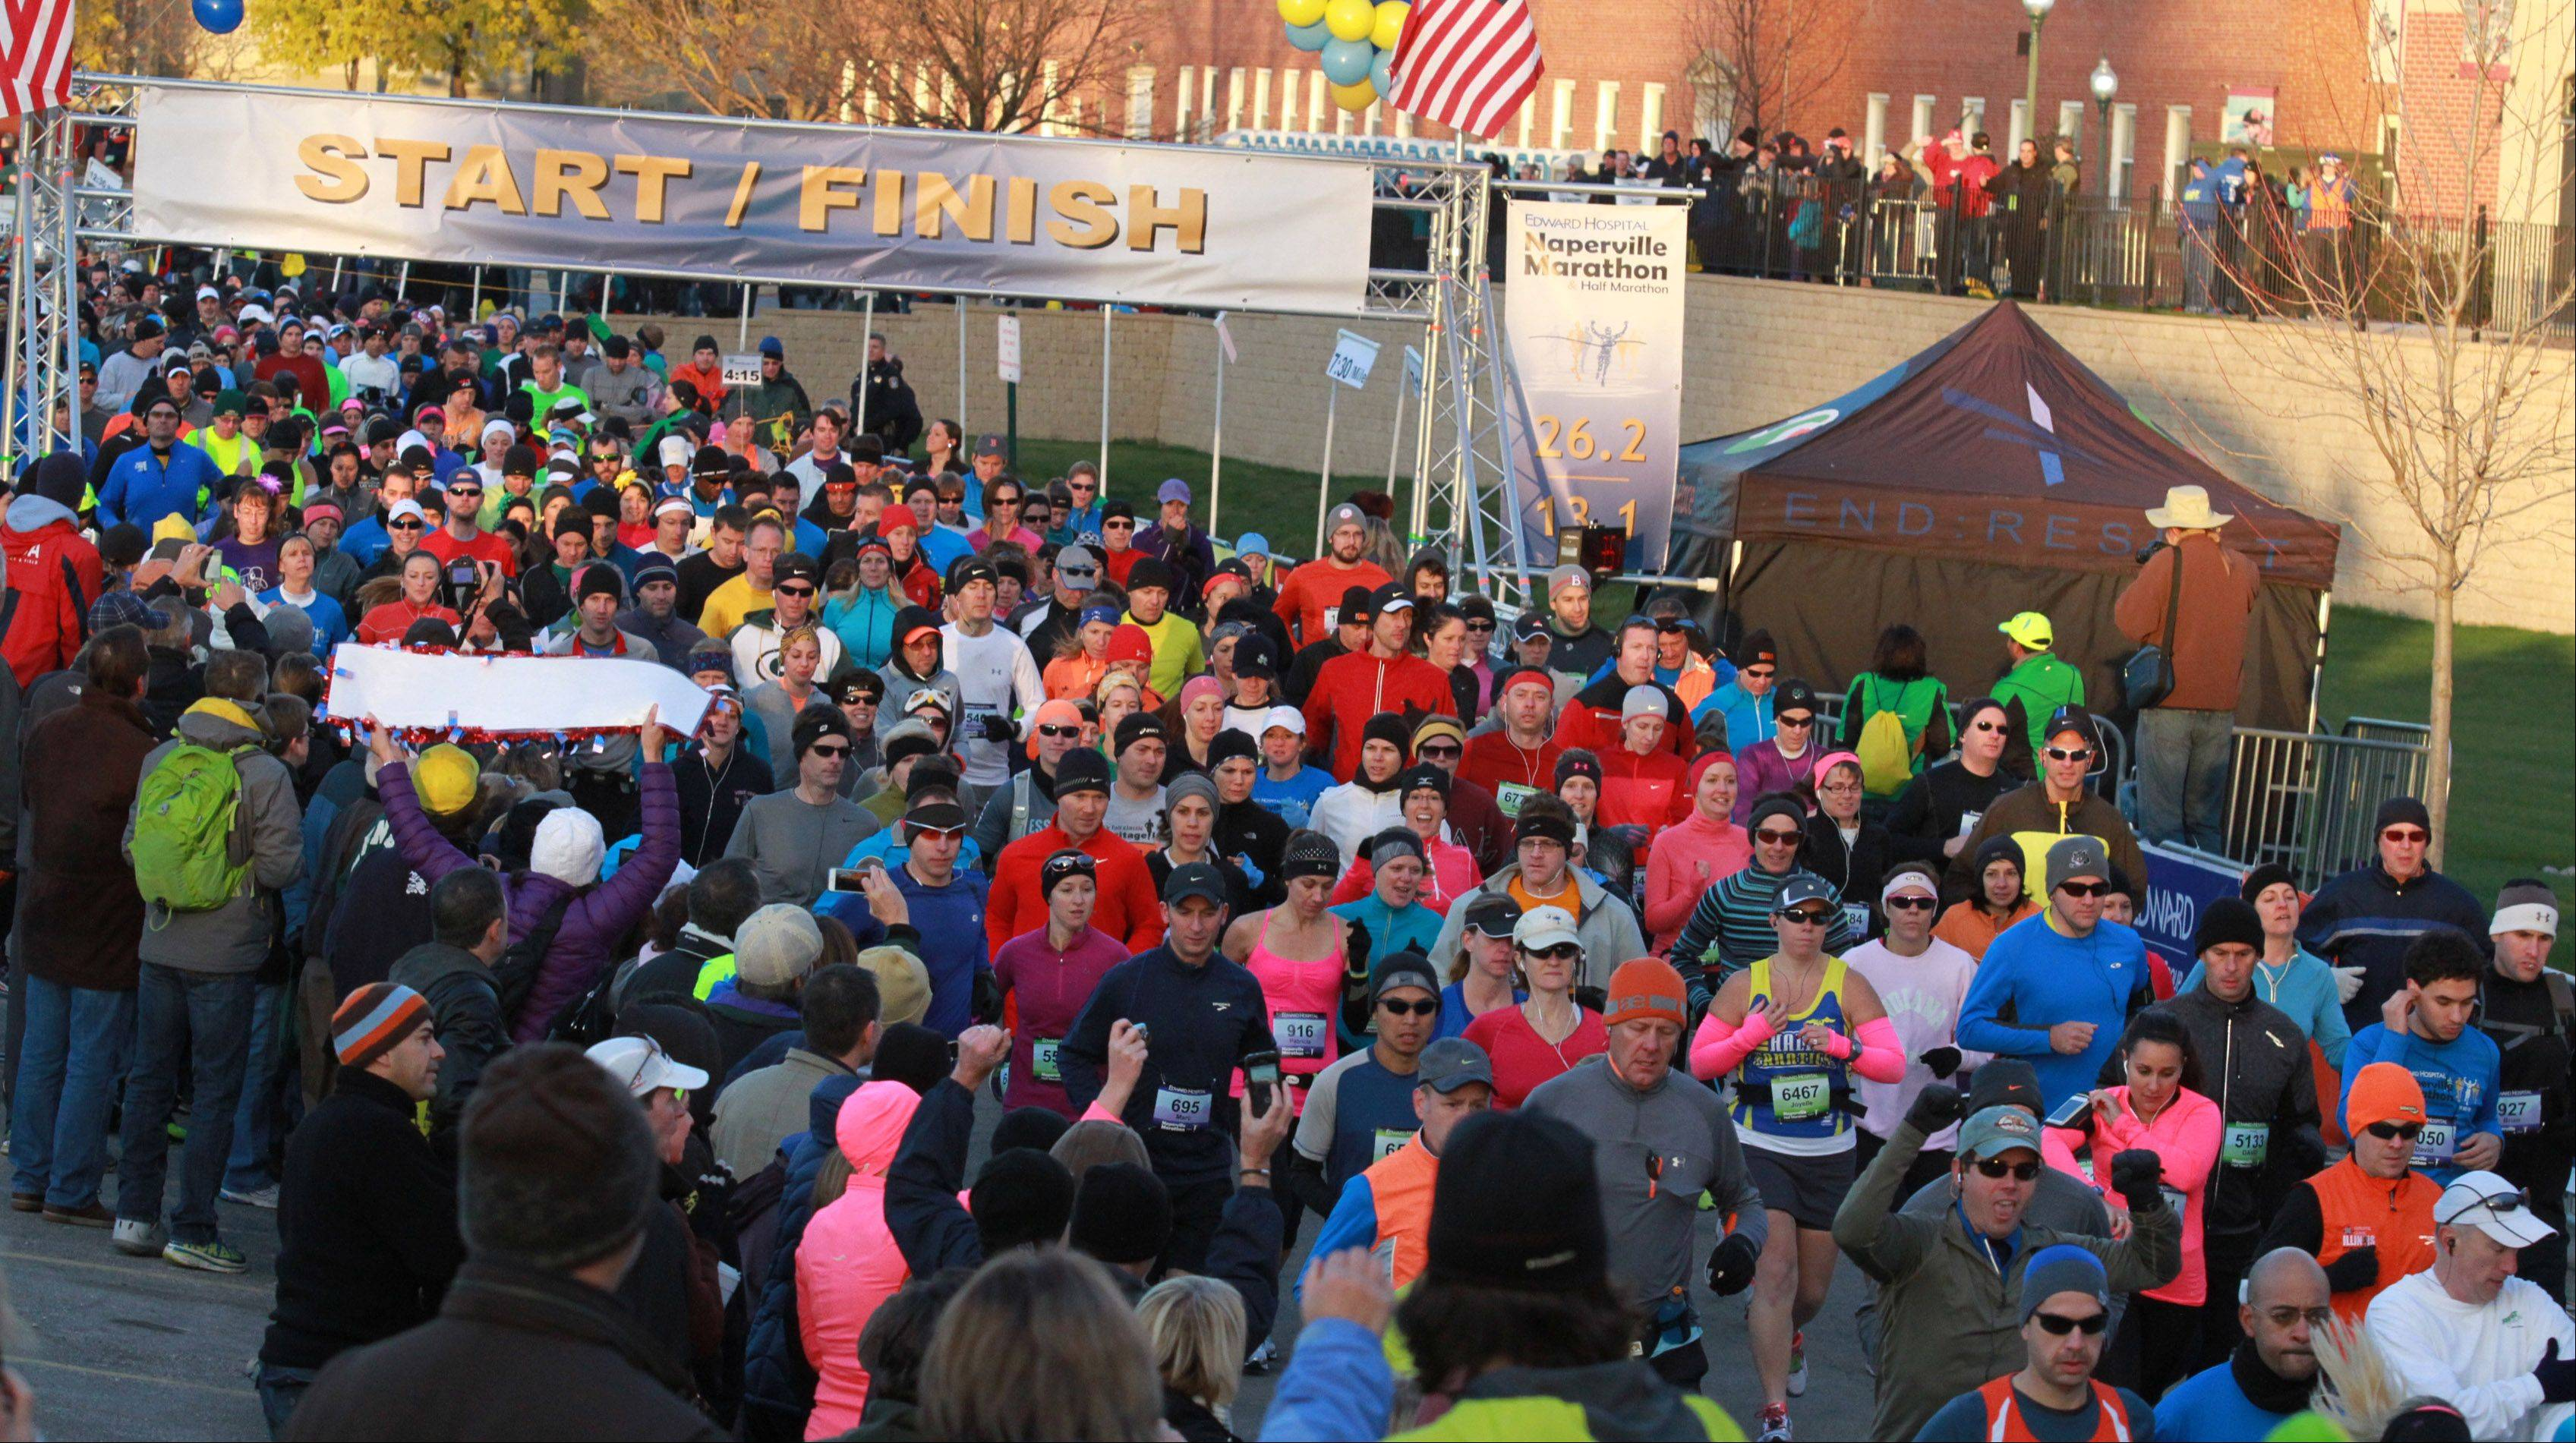 Spots available in this year's Edward Hospital Naperville Marathon and Half Marathon will double to 7,000, organizers said Monday. The second running of the races will be Nov. 9 and organizers are working to finalize the course.